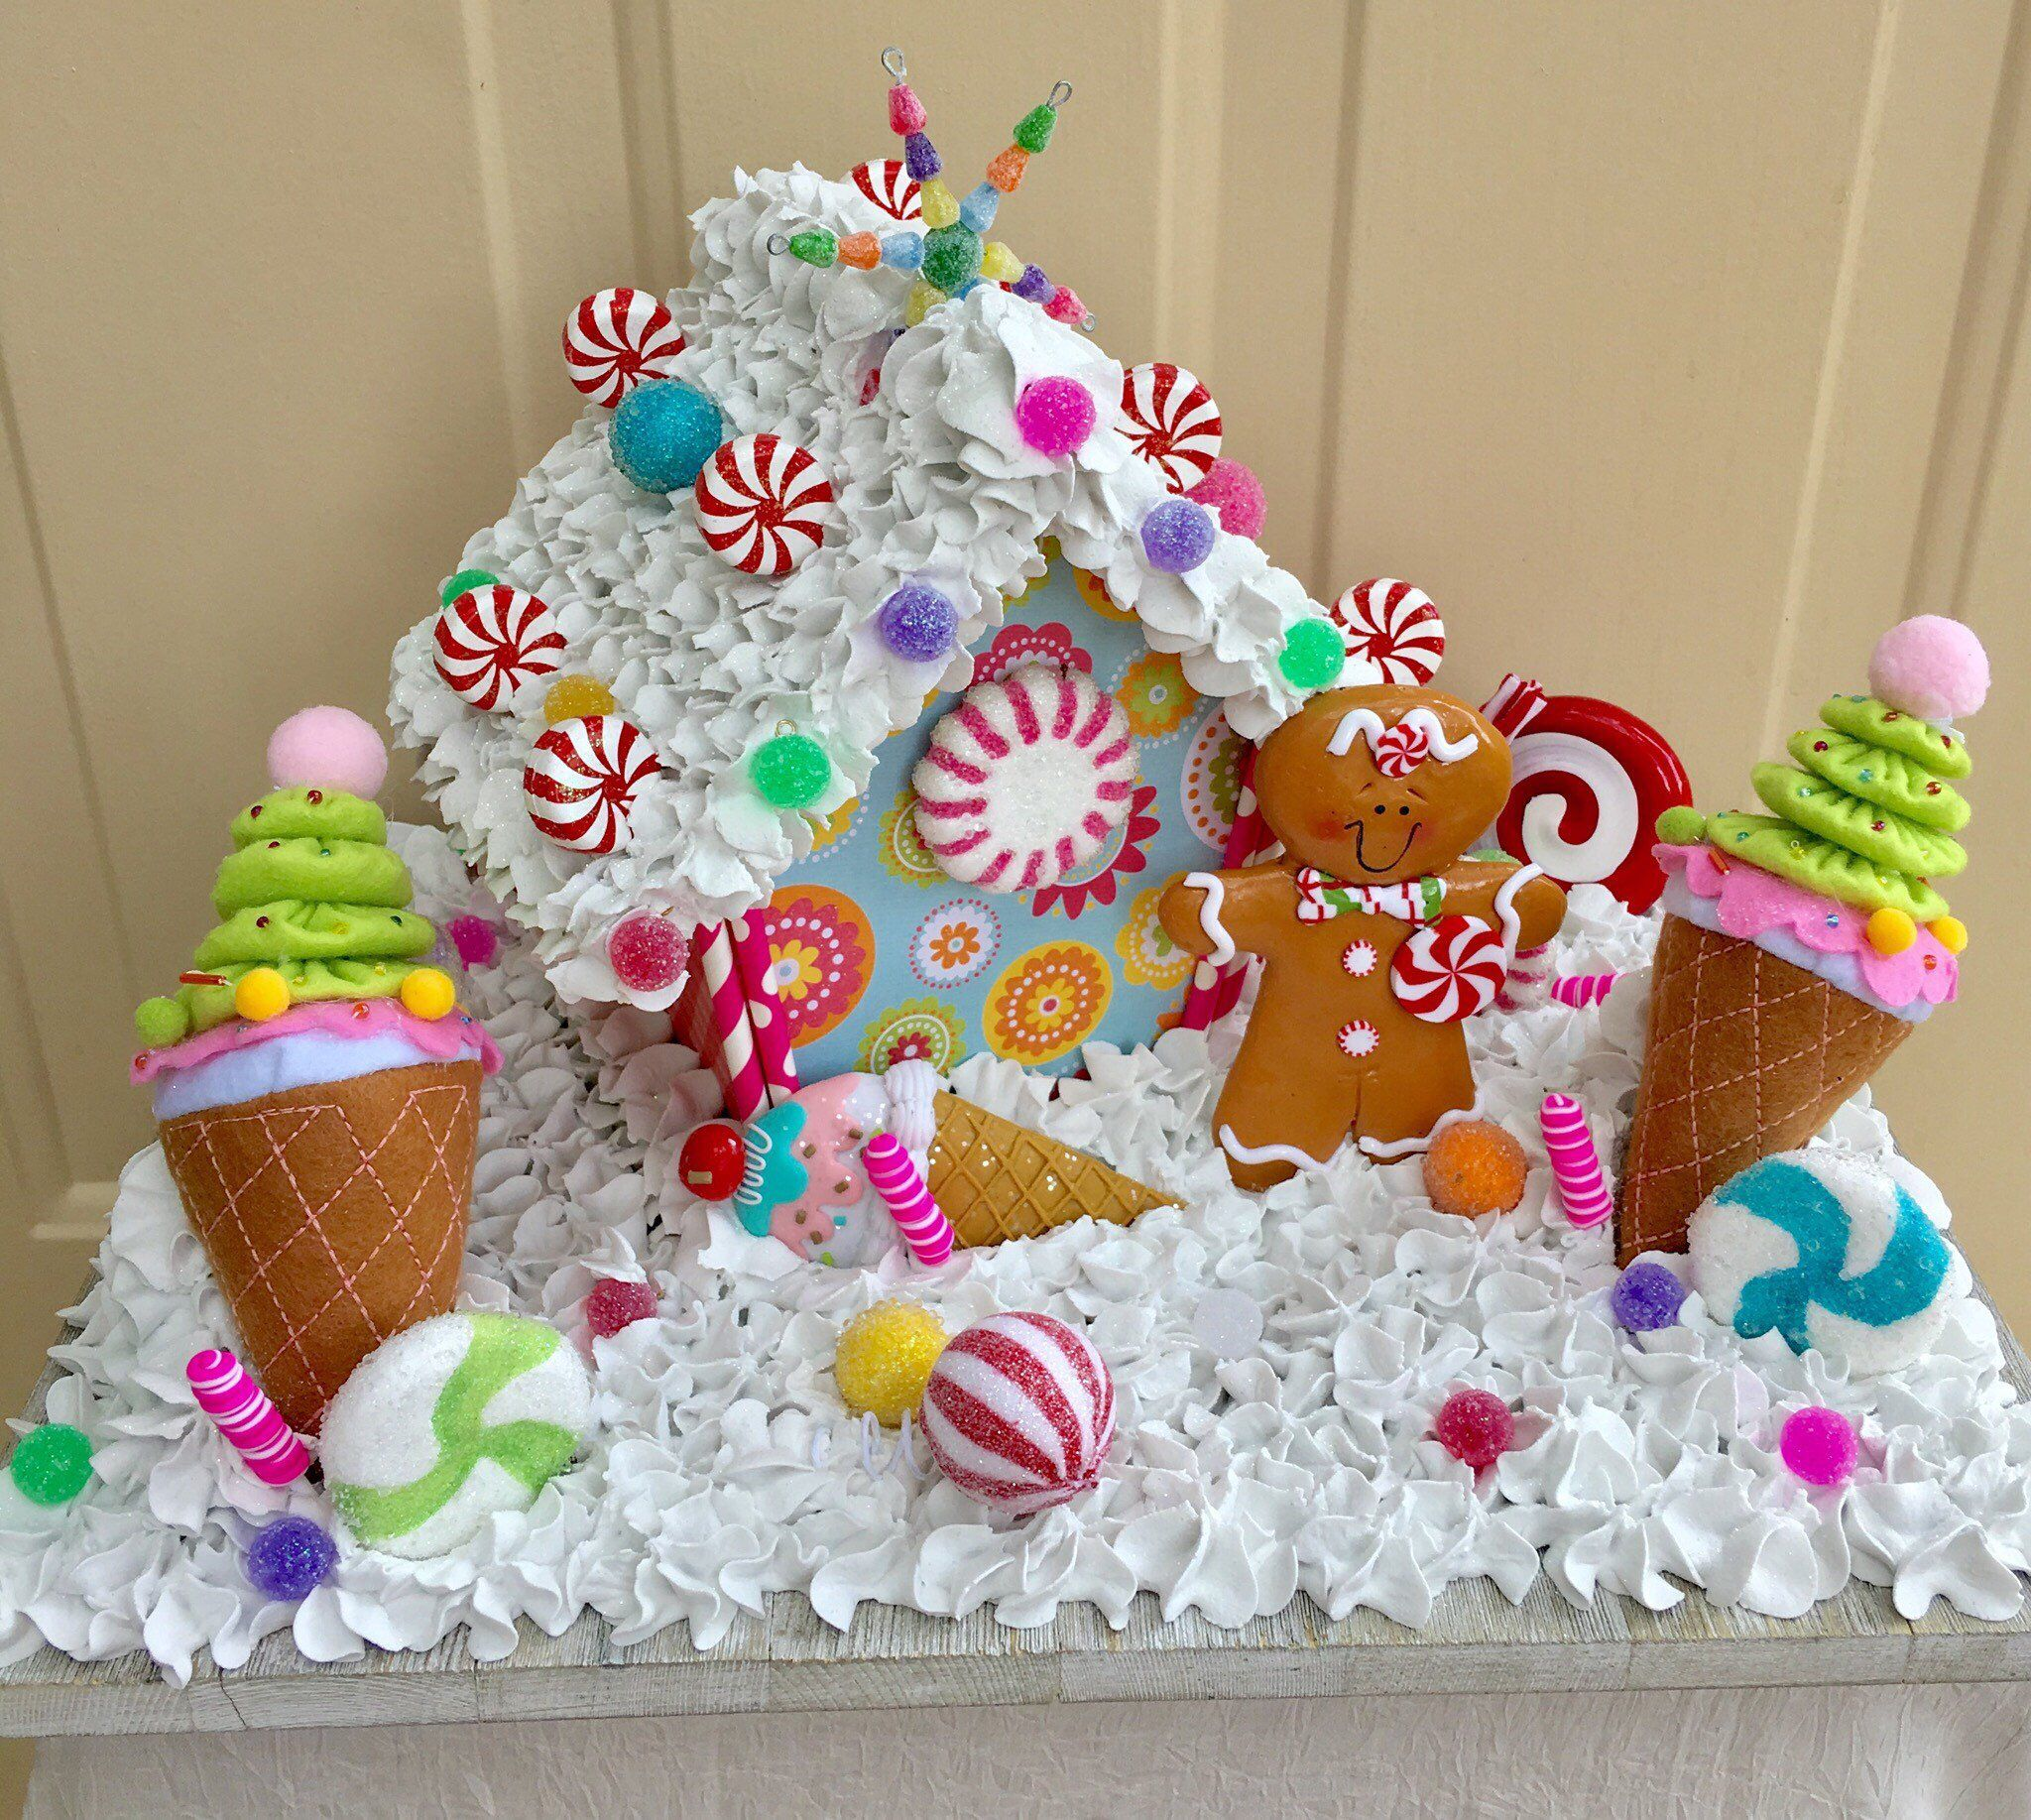 Gingerbread Centerpiece Candy Land Centerpiece Christmas Centerpiece Christmas D Gingerbread House Decorations Christmas Gingerbread House Gingerbread House